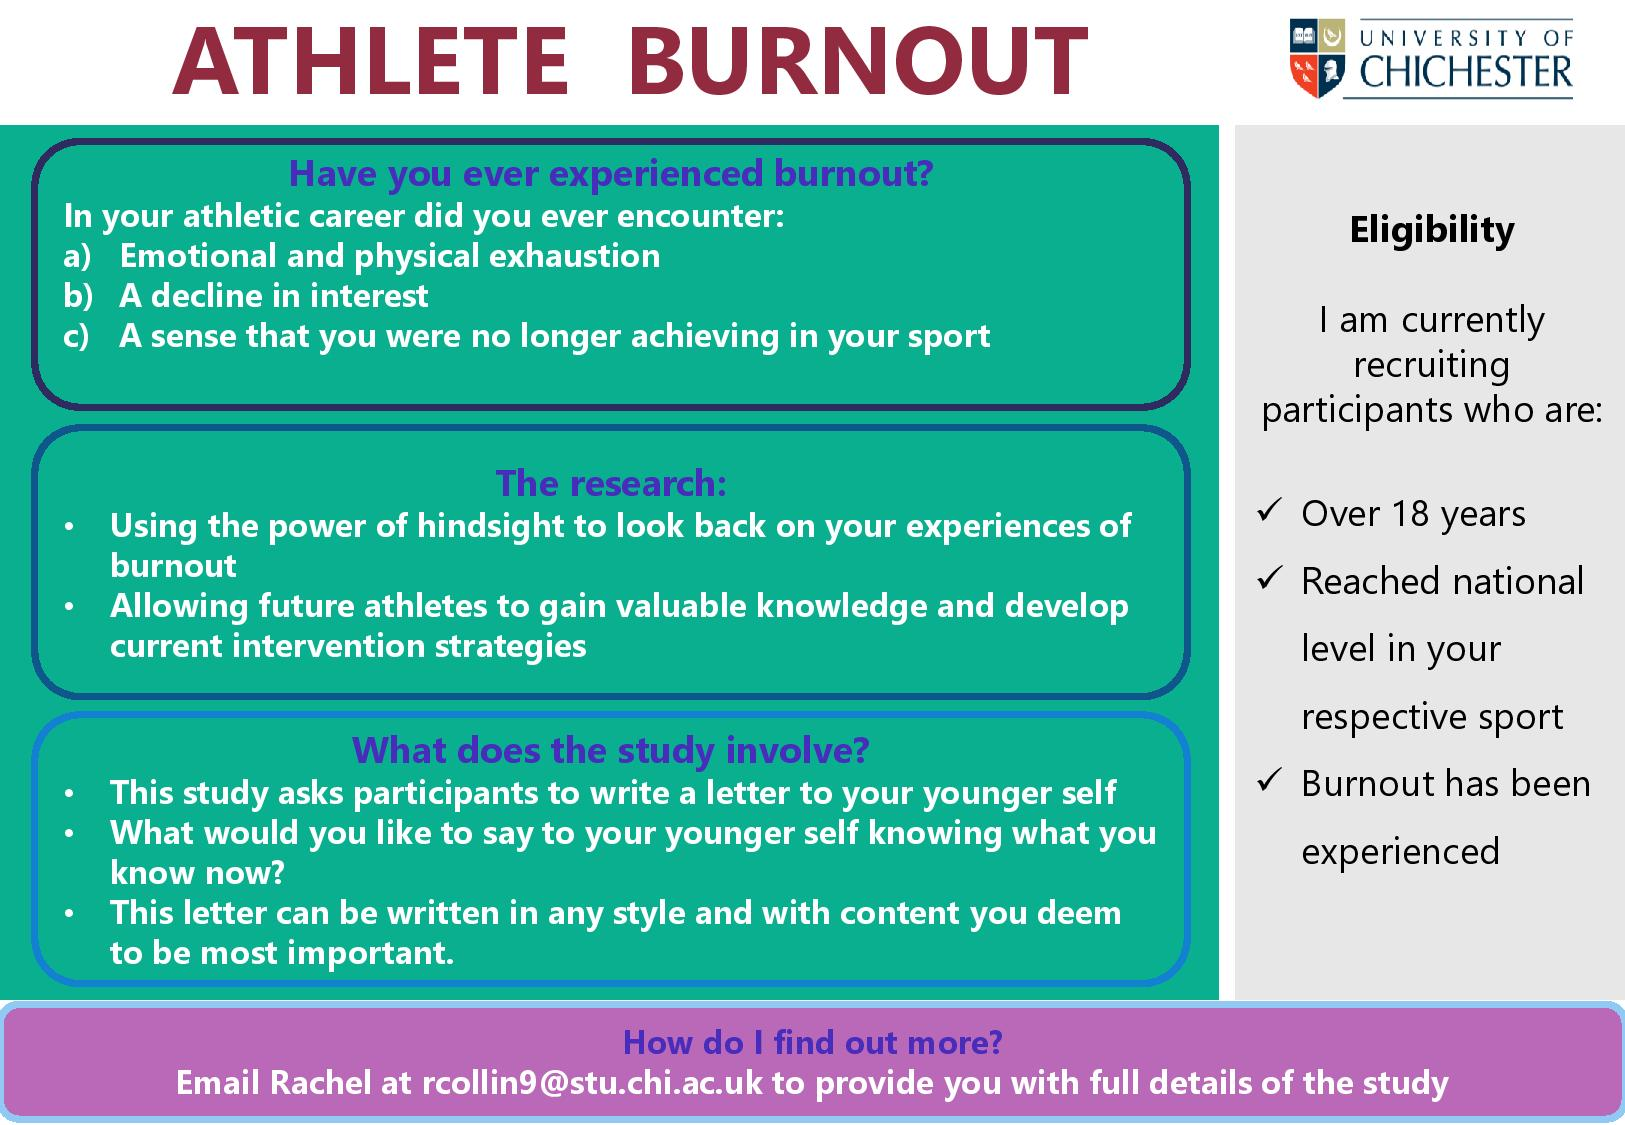 AthleteBurnout_Poster (1) (1).jpg